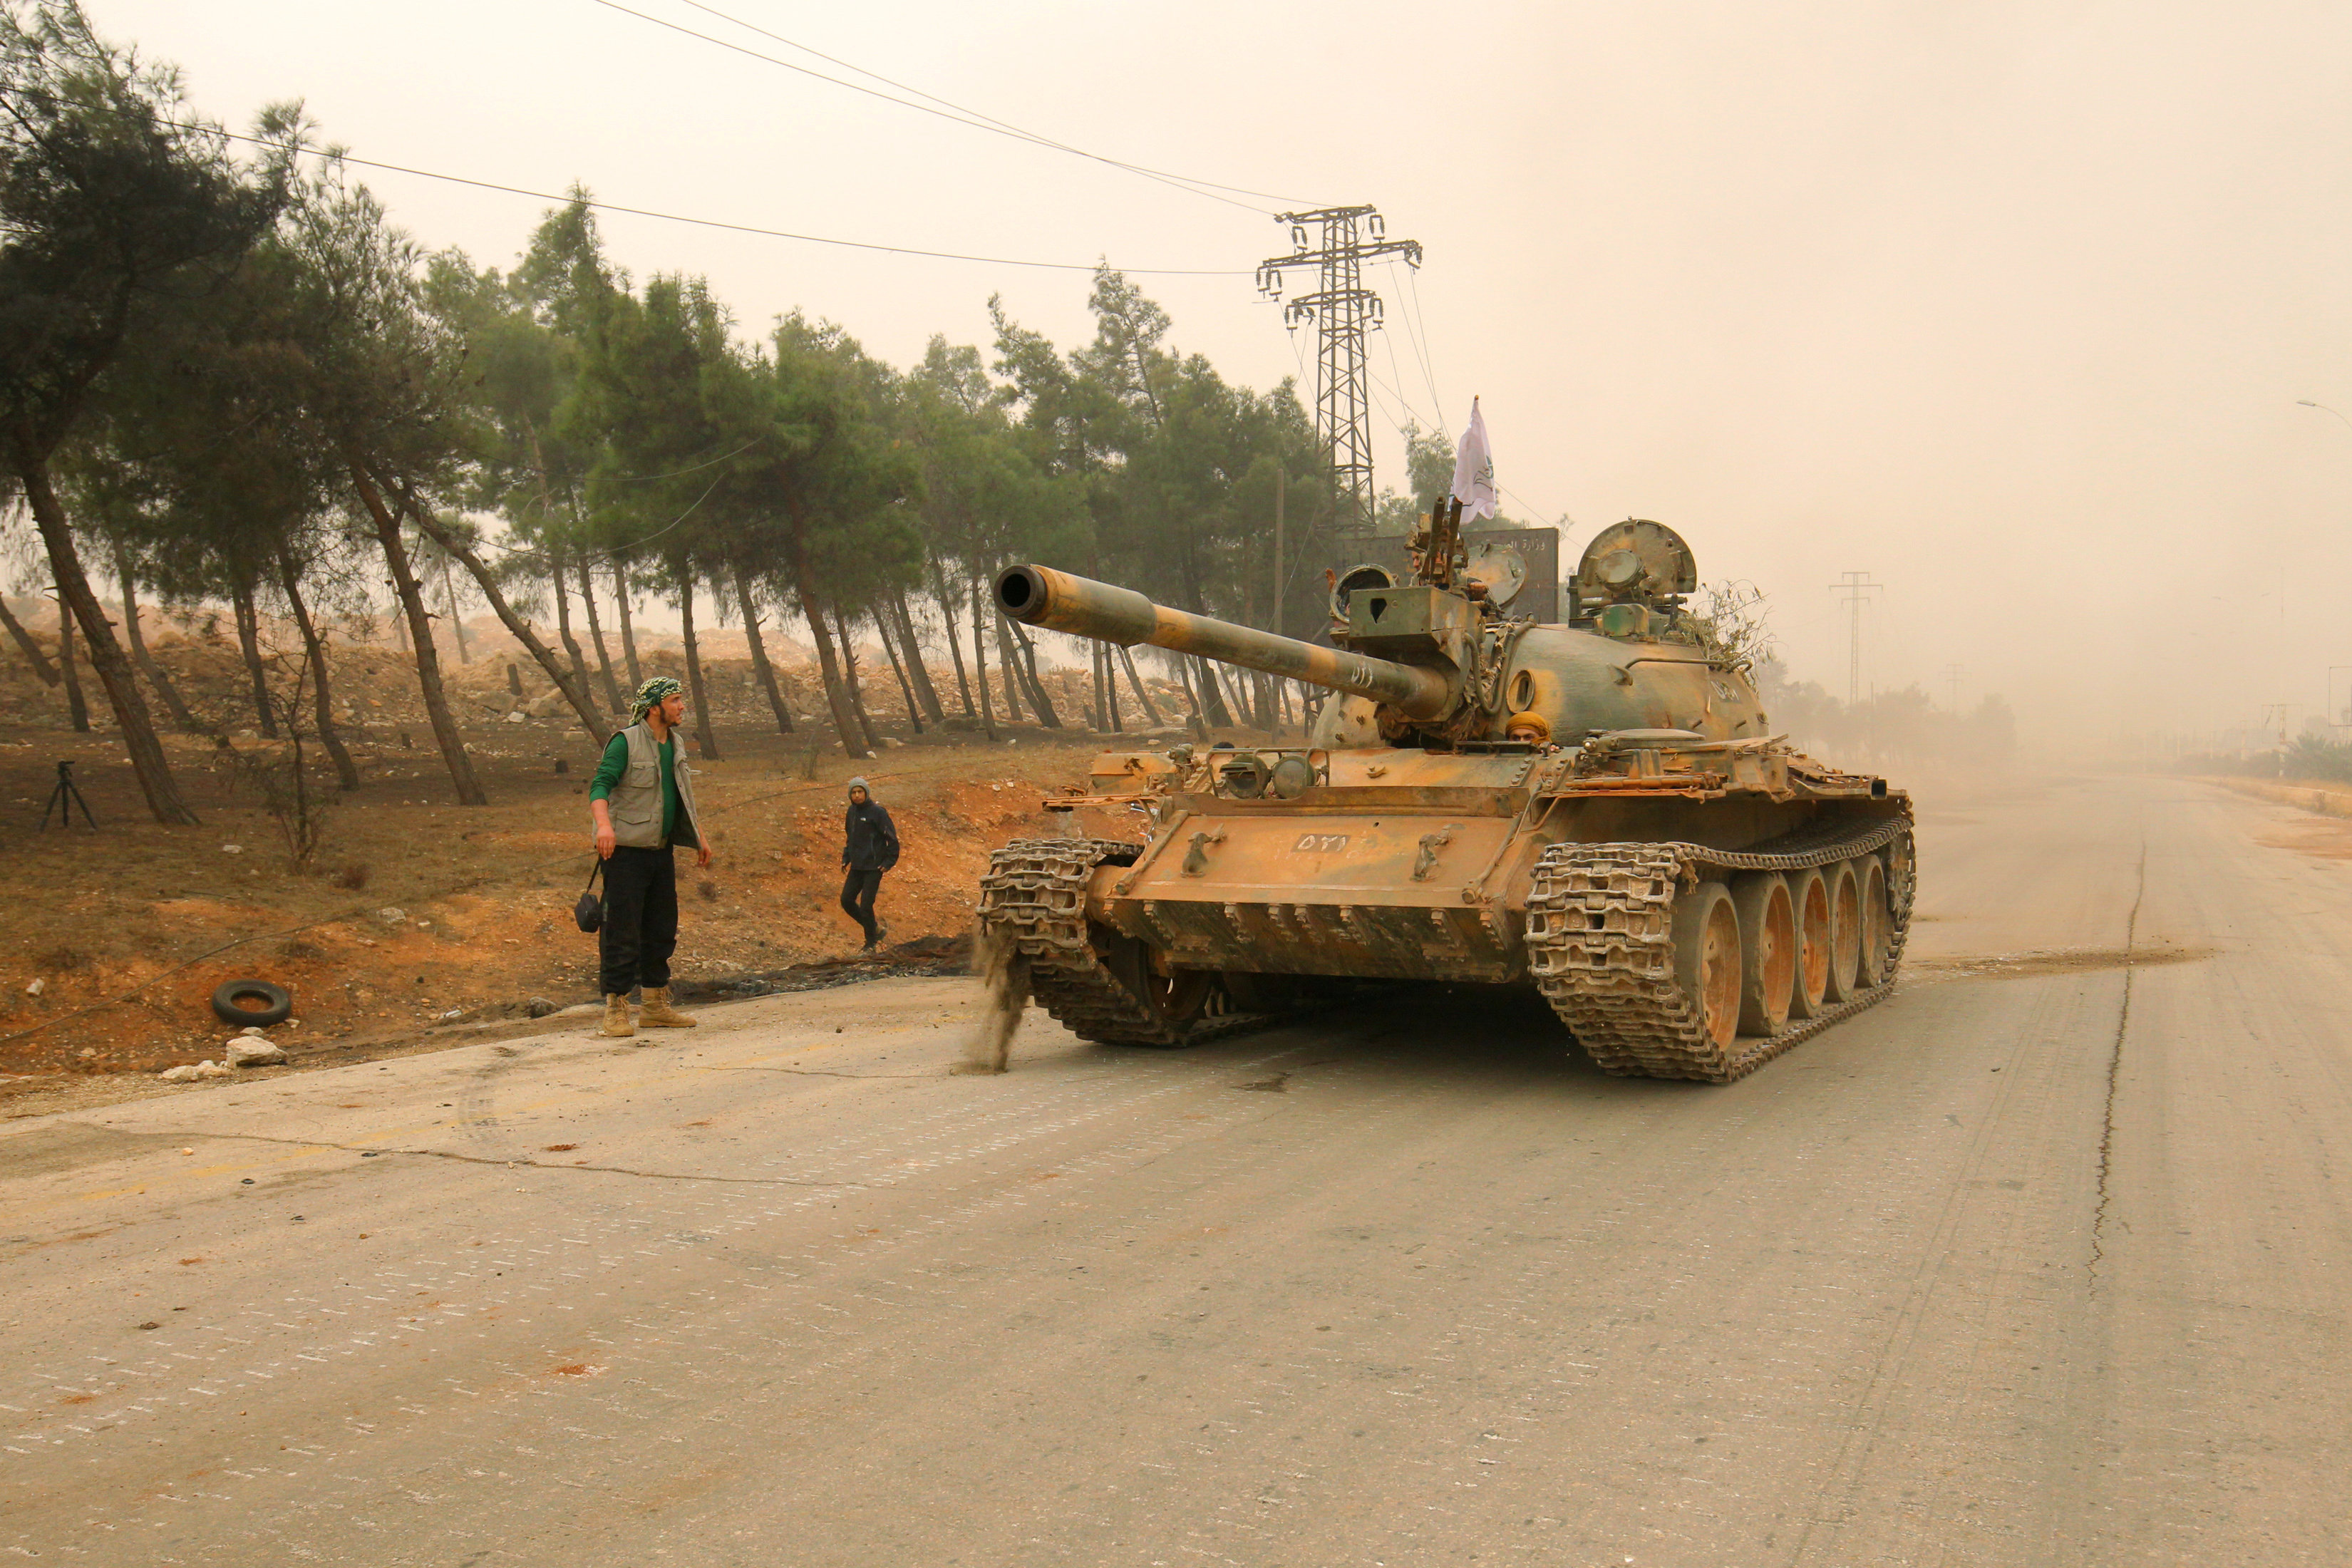 A tank for rebel fighters drives in Dahiyat al-Assad west Aleppo city, Syria October 28, 2016.